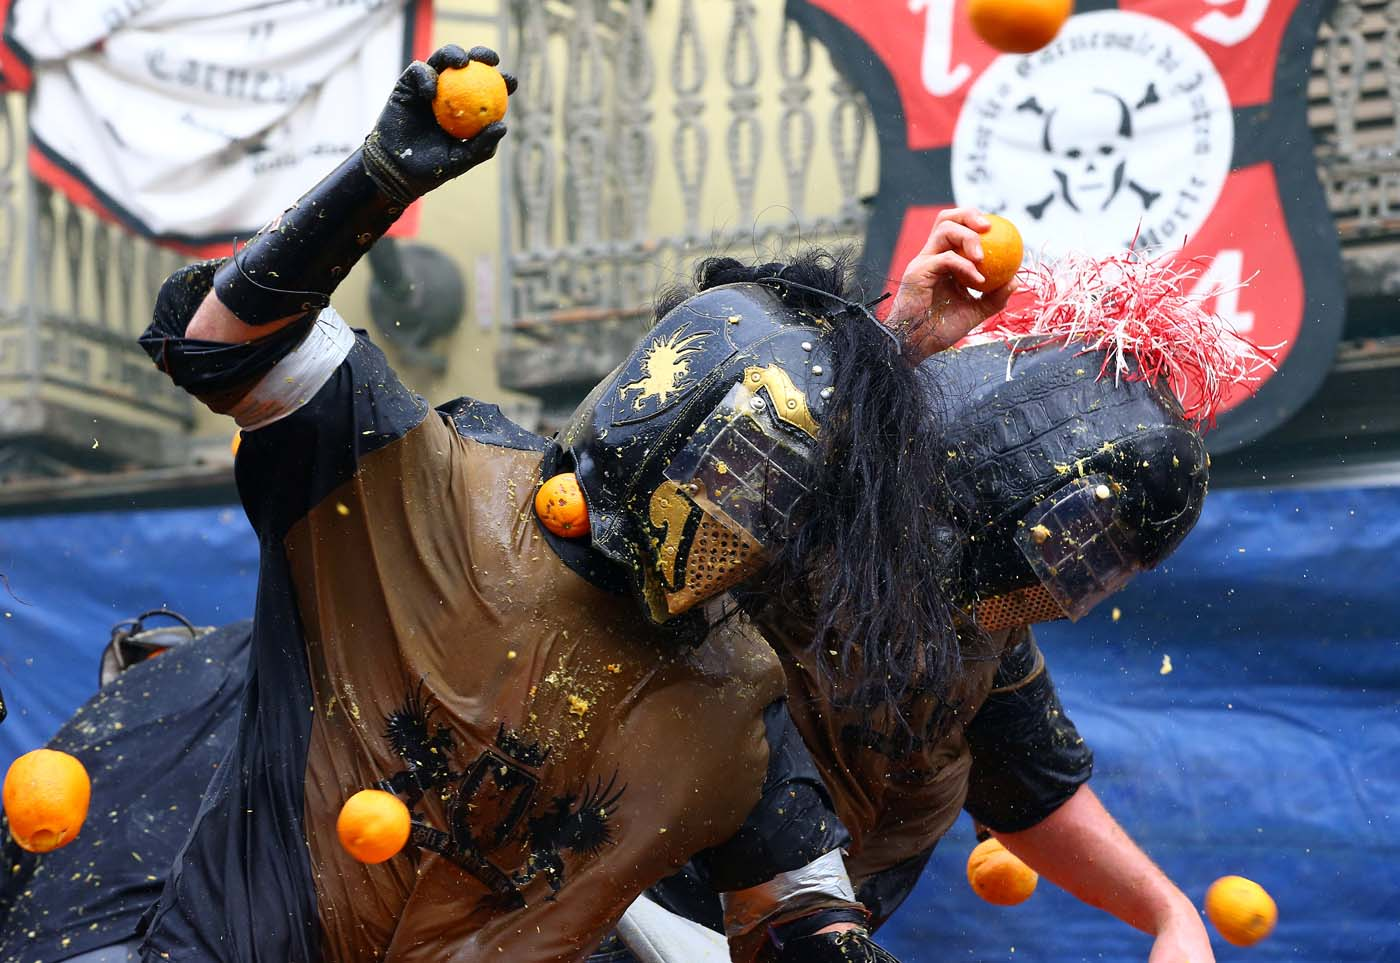 Members of a rival team are hit by oranges during an annual carnival orange battle in the northern Italian town of Ivrea February 26, 2017. REUTERS/Stefano Rellandini